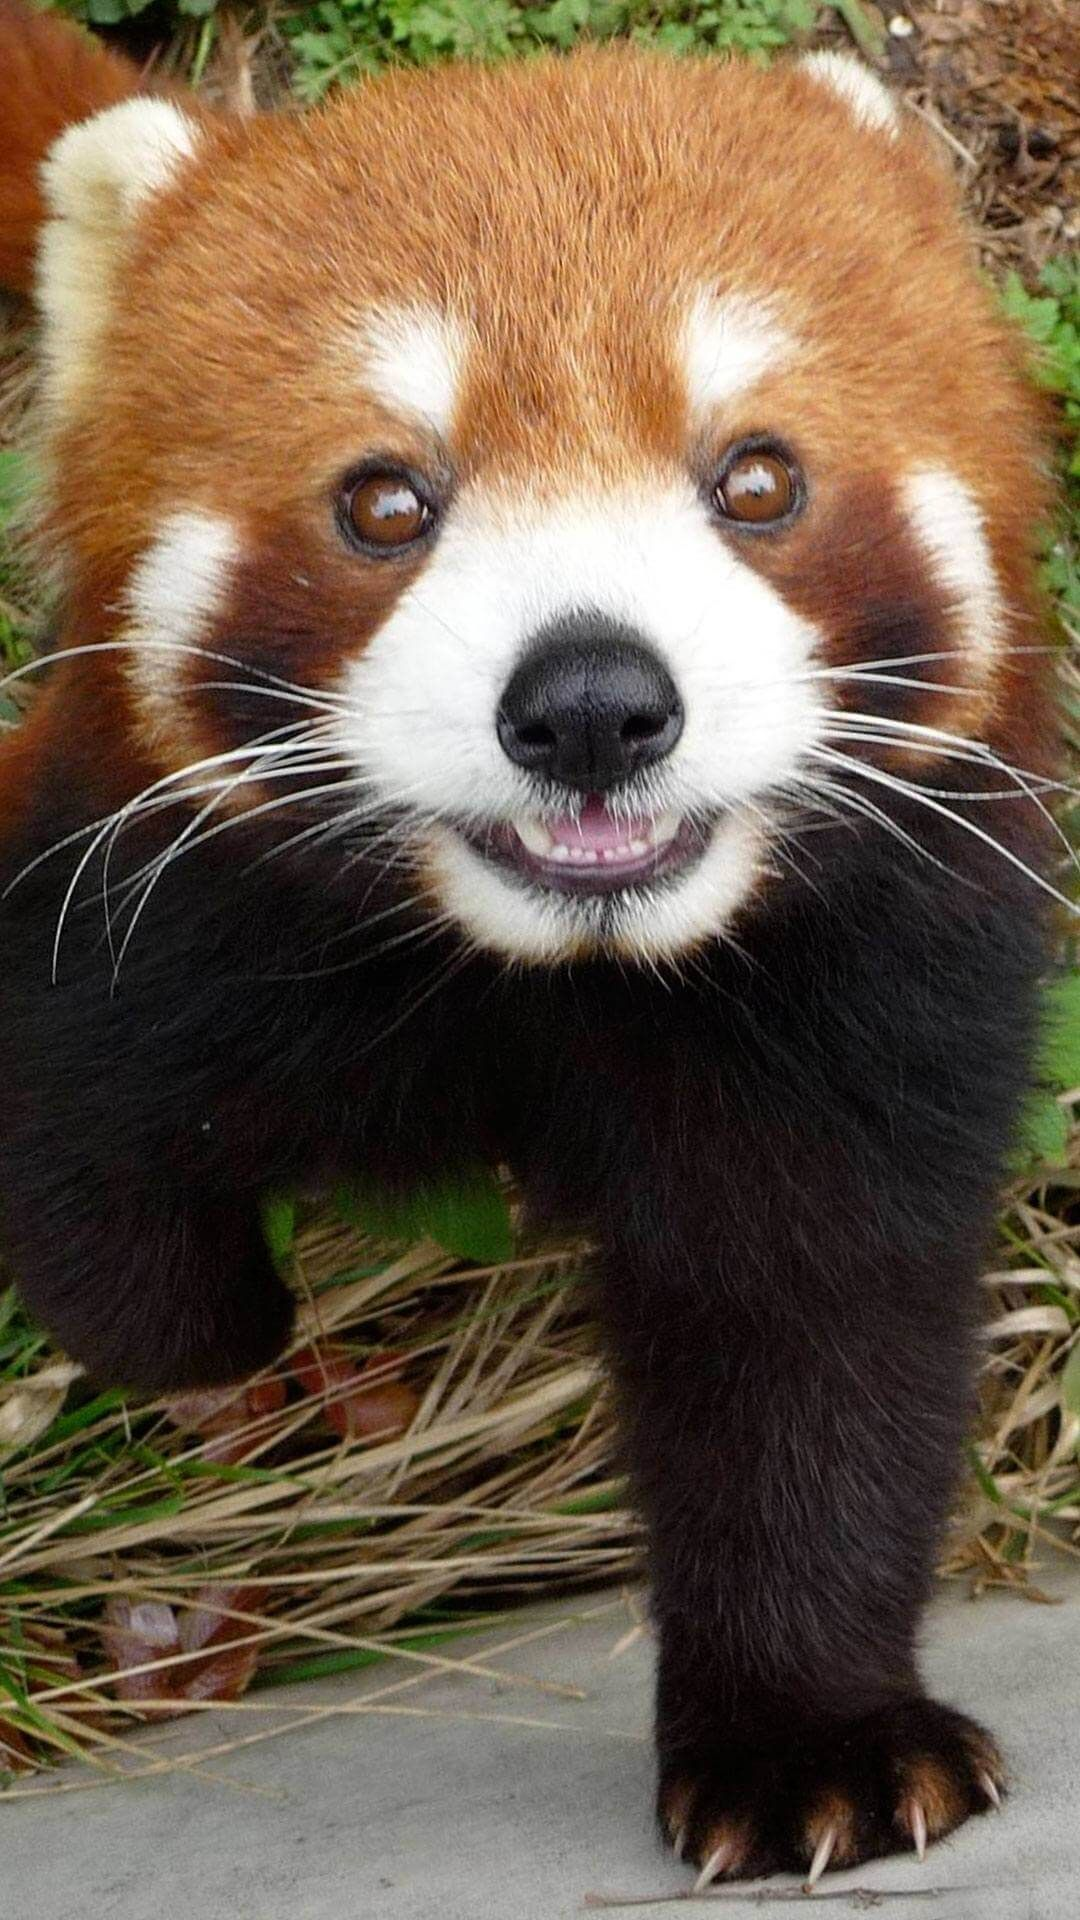 Cute Red Panda Wallpaper iPhone HD Cute animals, Panda